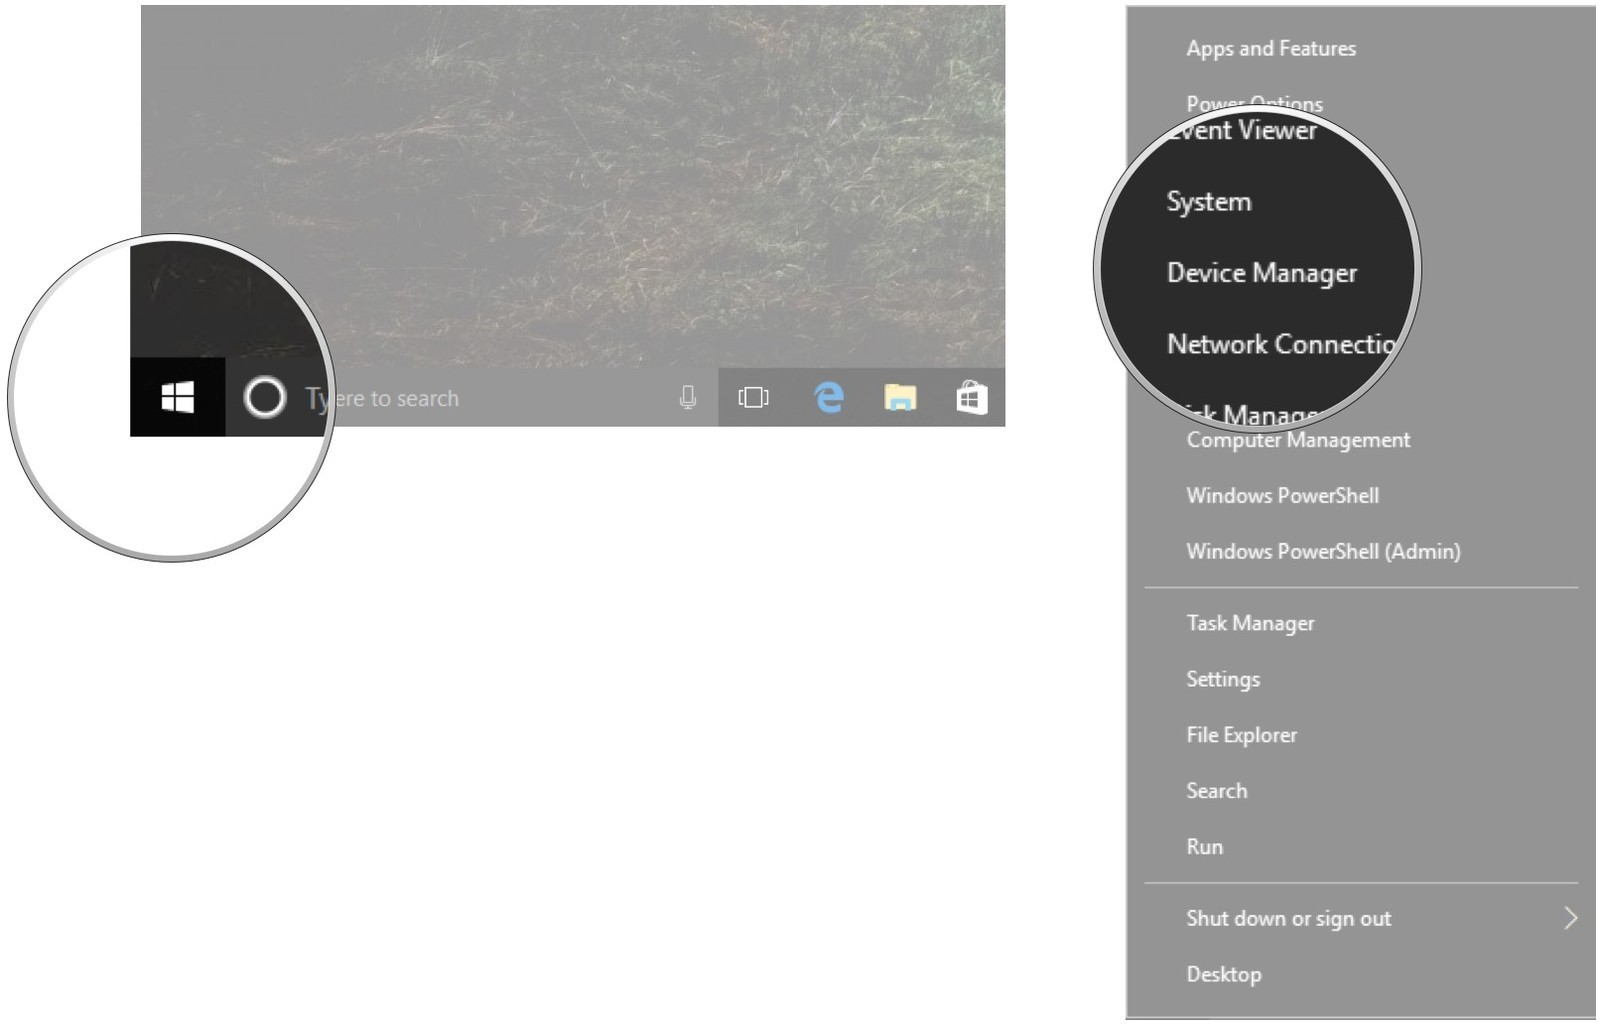 Right-click the Start menu. Click Device Manager.